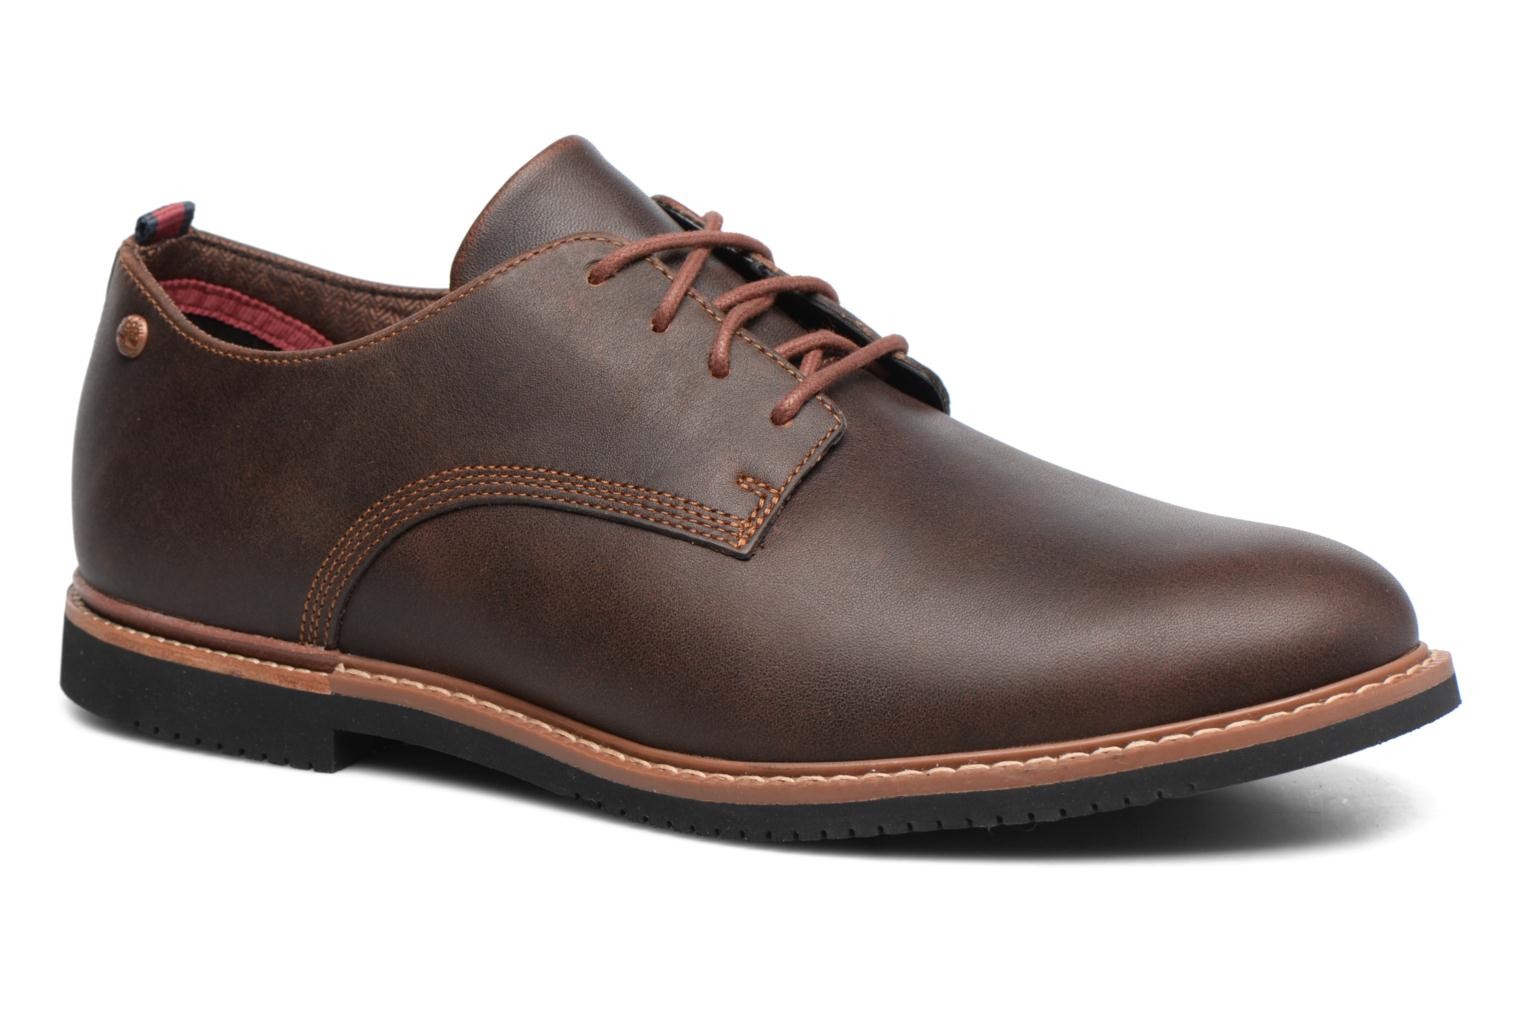 Chaussures à lacets Timberland marron Casual l3rua86o